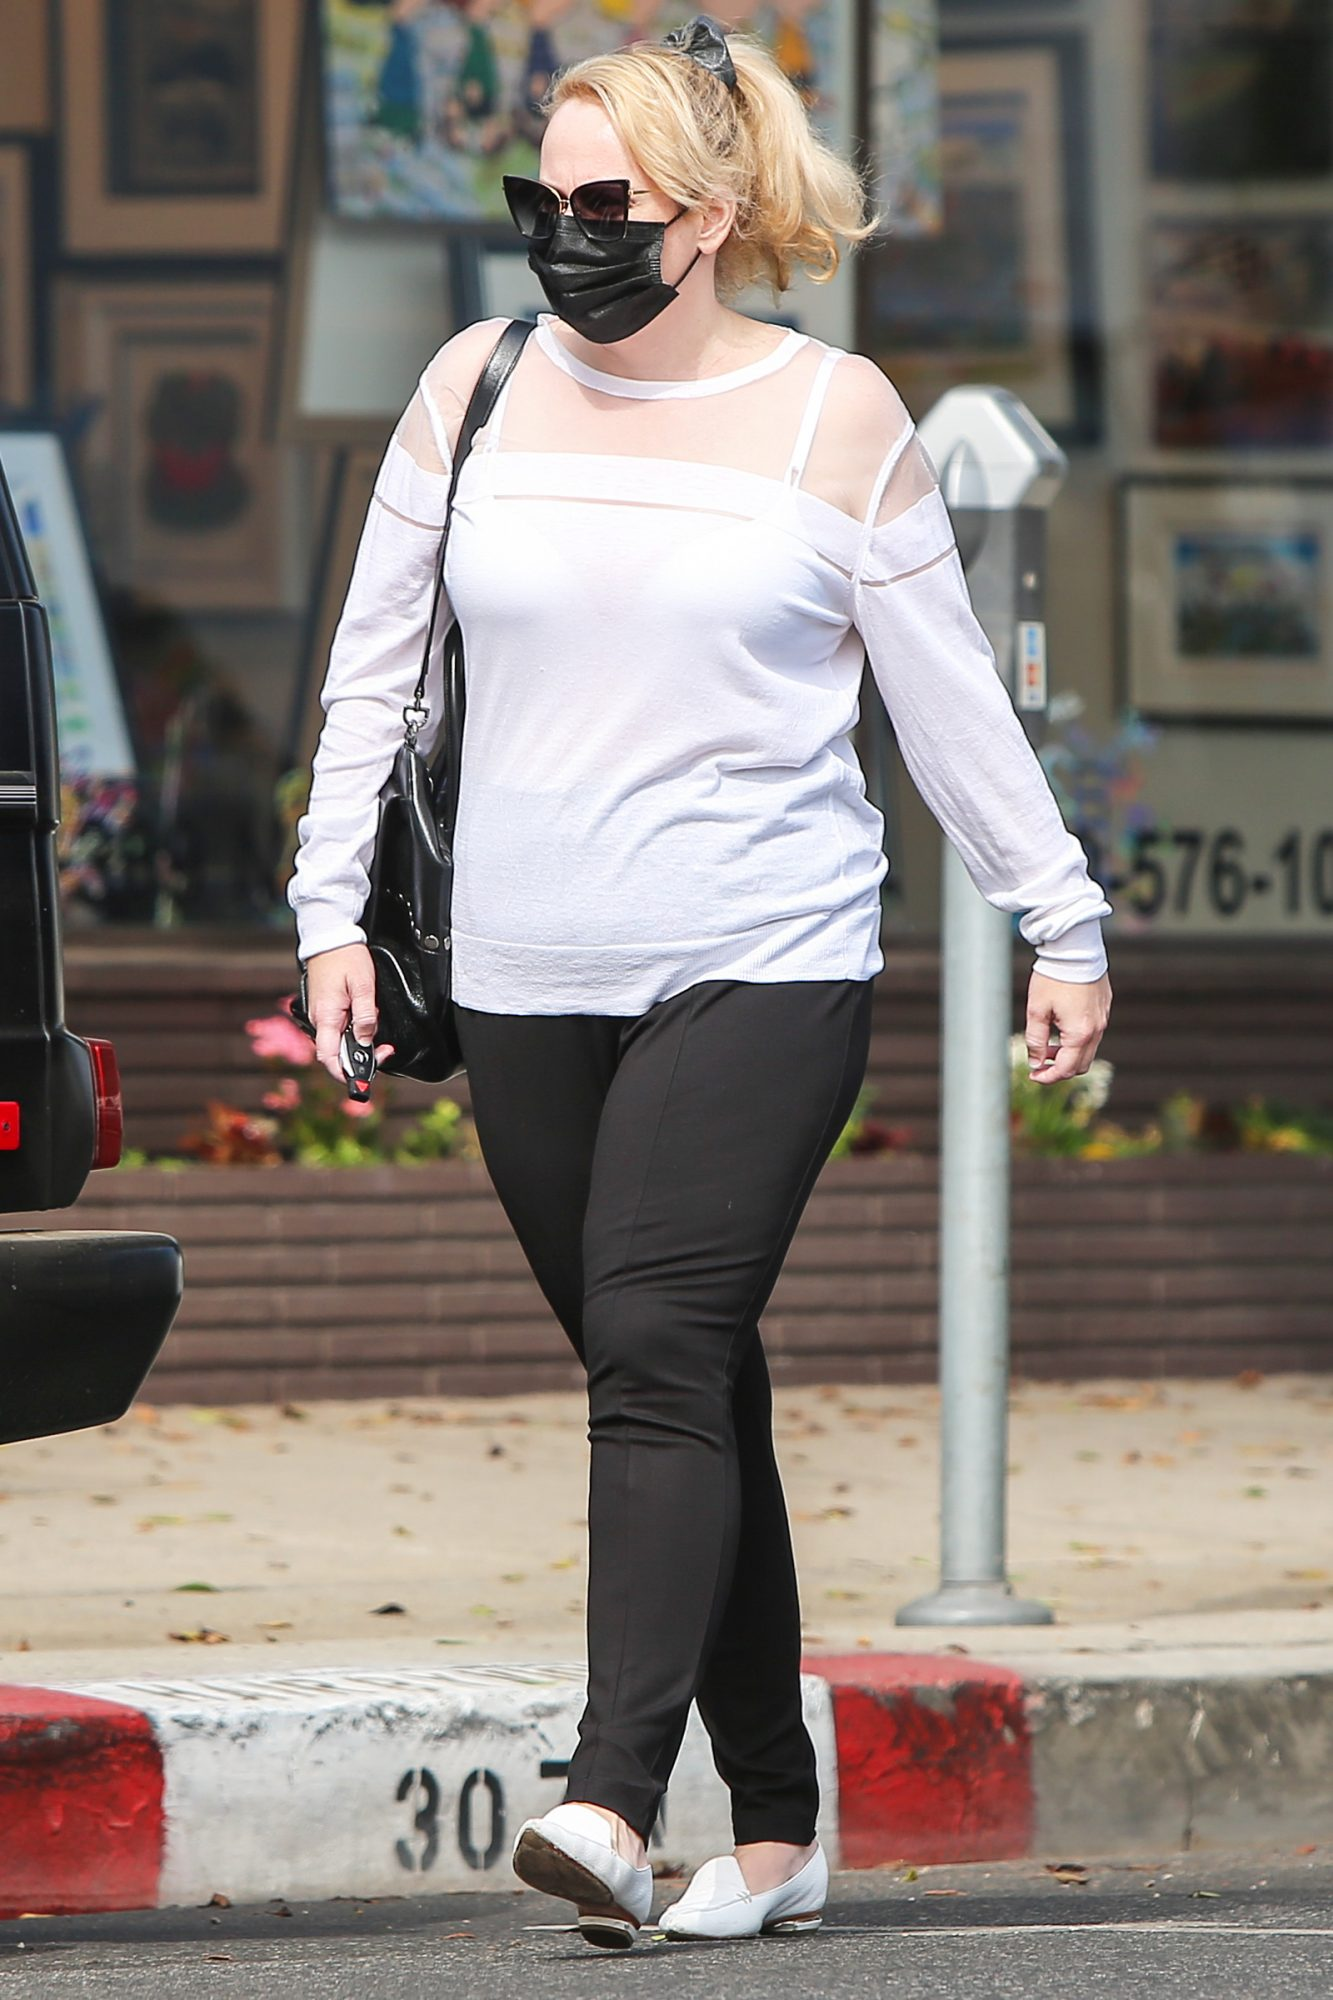 Rebel Wilson Does Some Window Shopping in Los Angeles.